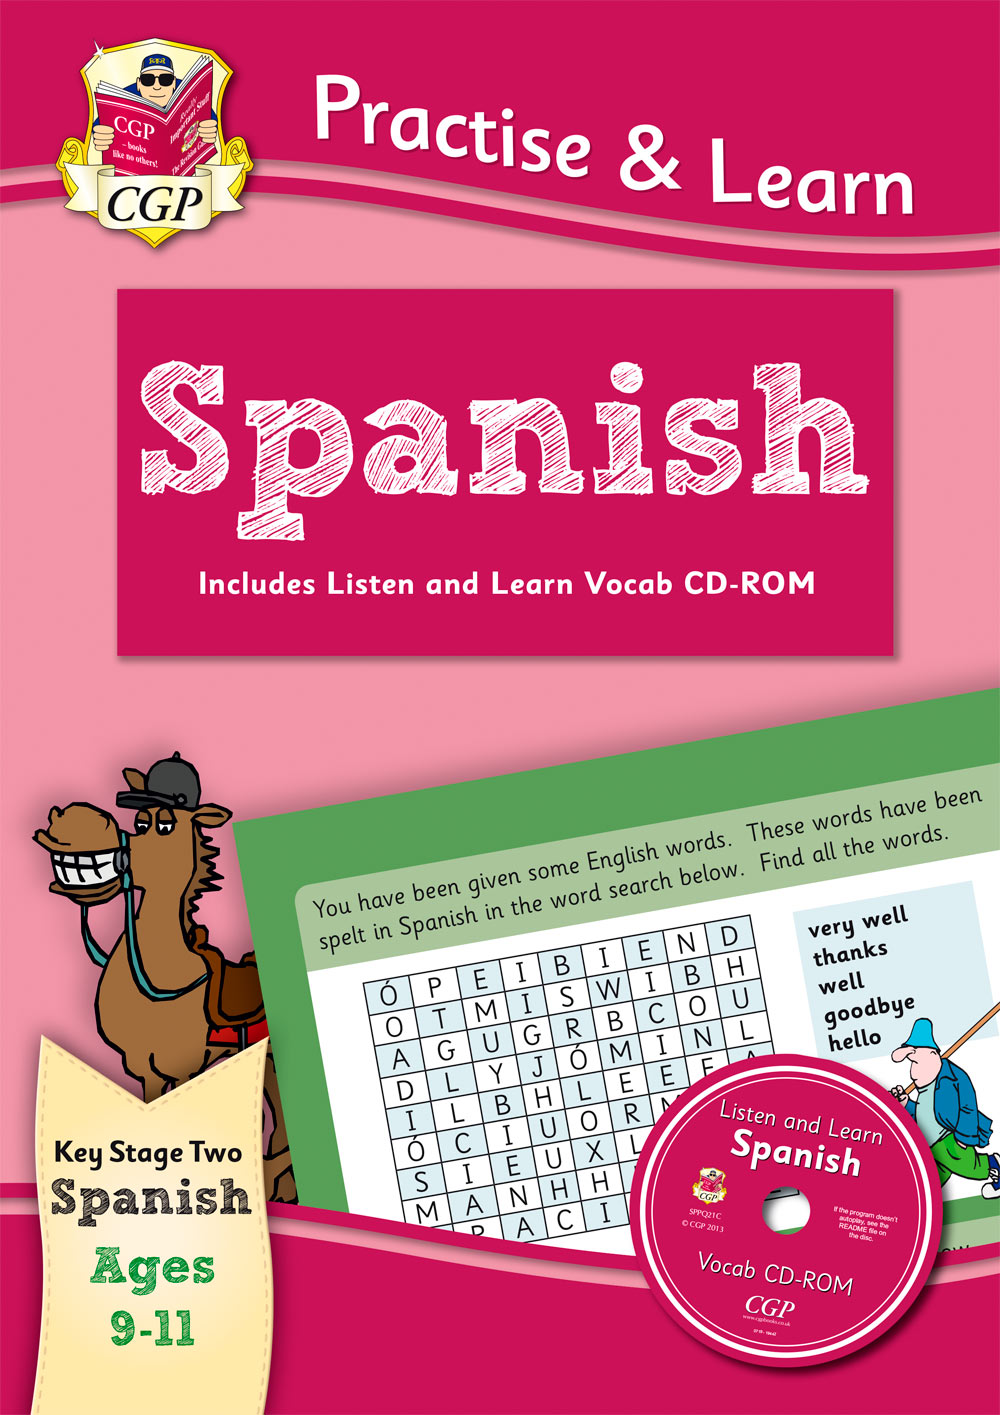 SPP6Q22 - New Curriculum Practise & Learn: Spanish for Ages 9-11 - with vocab CD-ROM